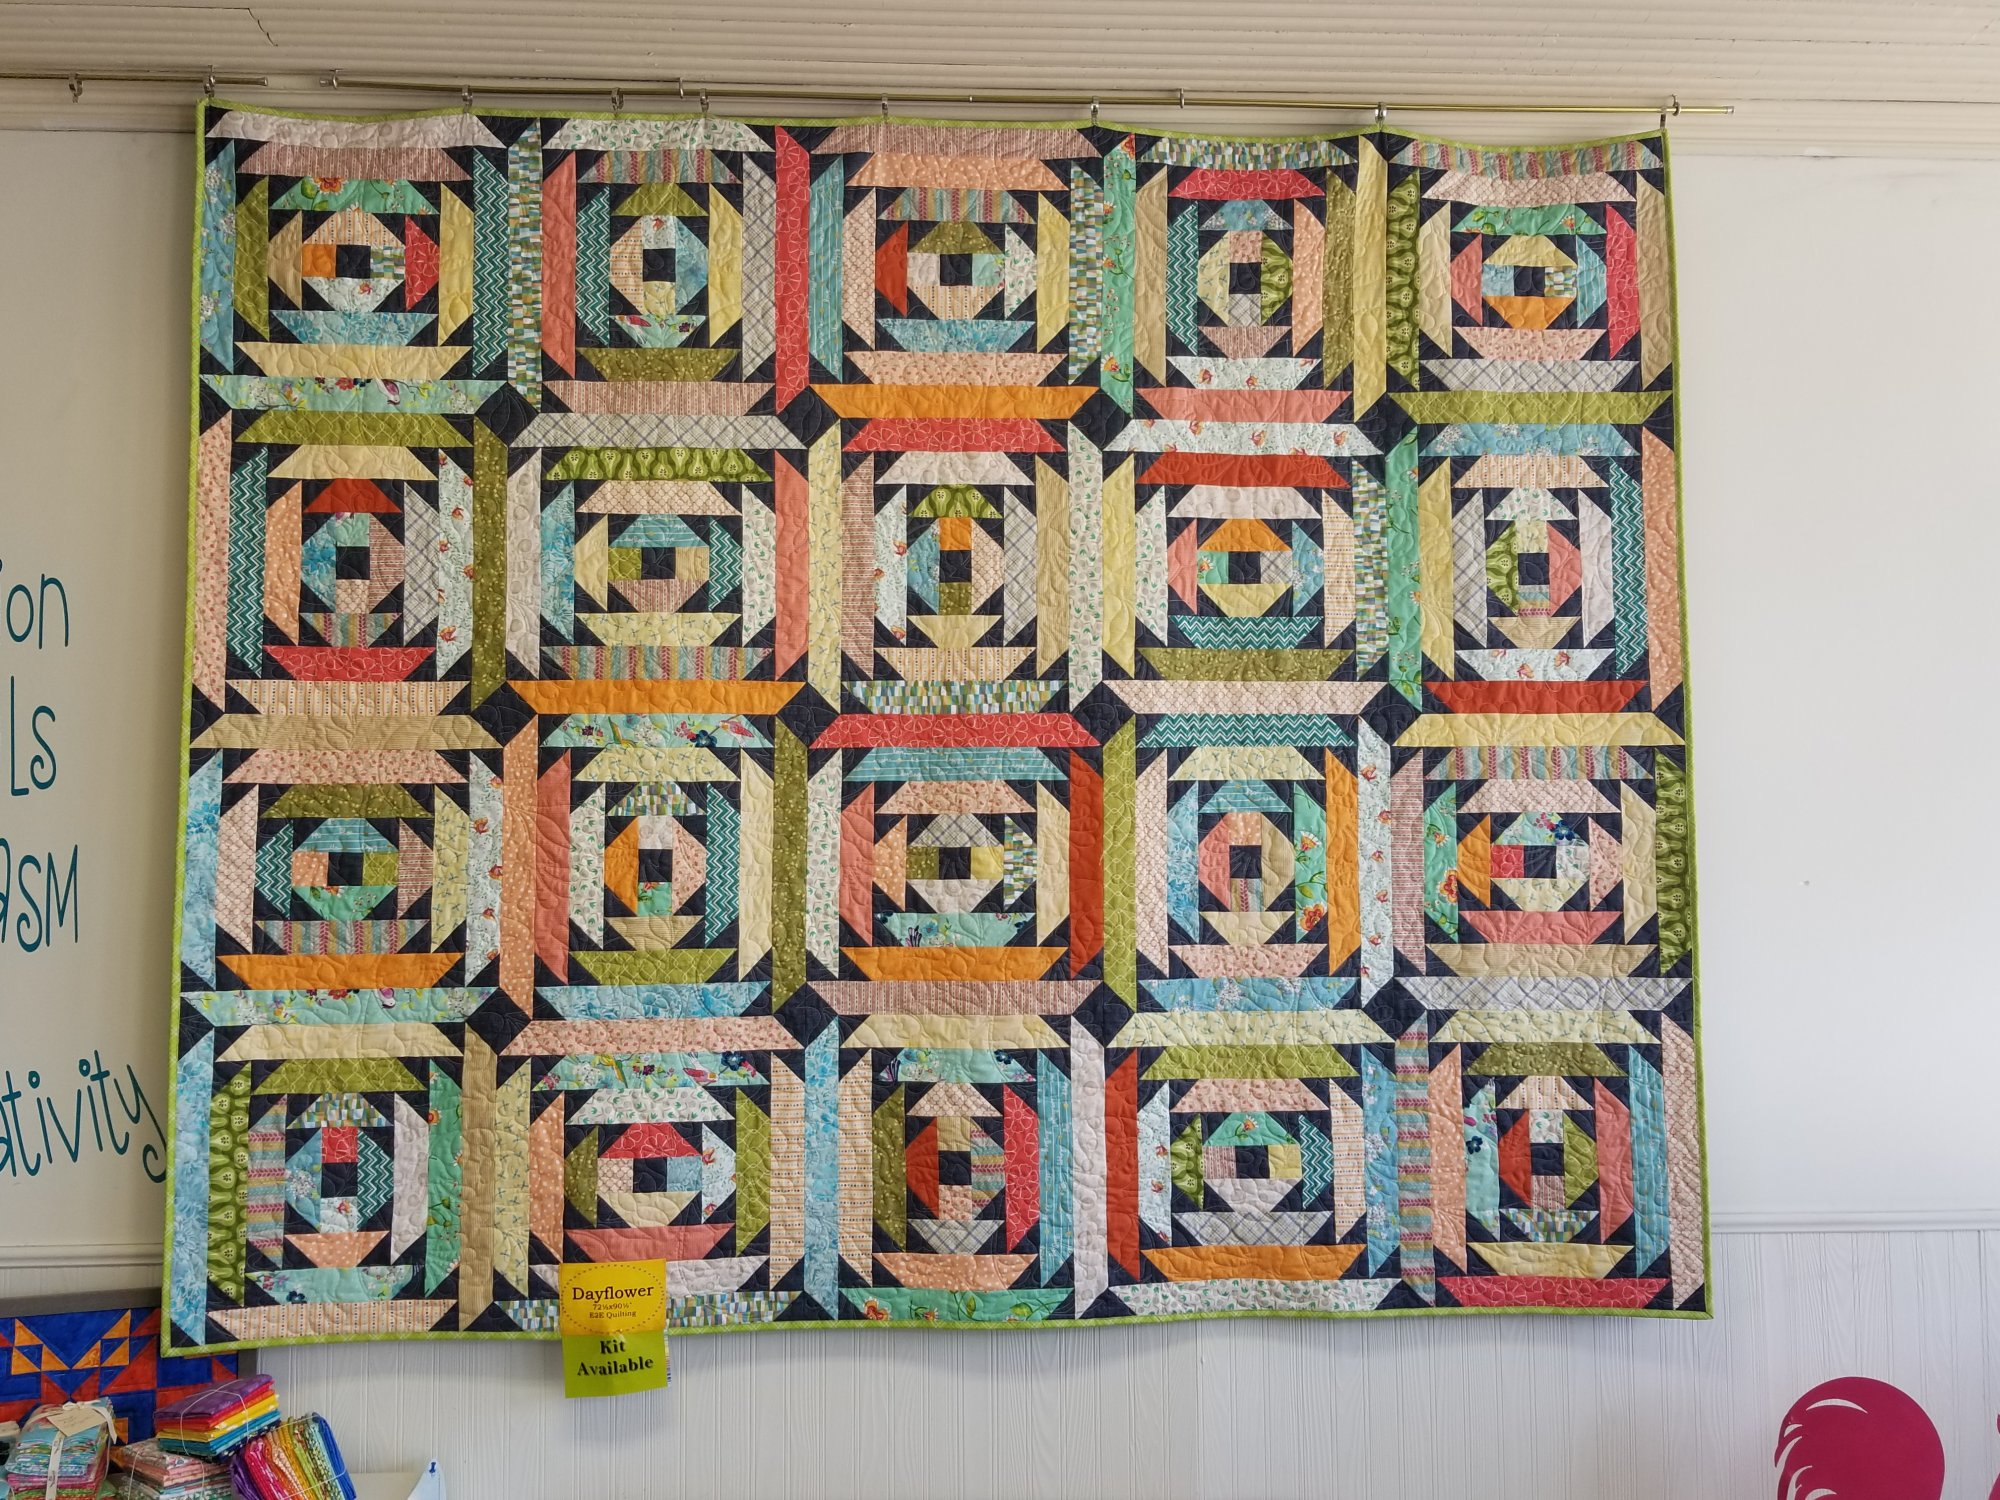 Dayflower Fabric Kit from Sunday Best Quilts